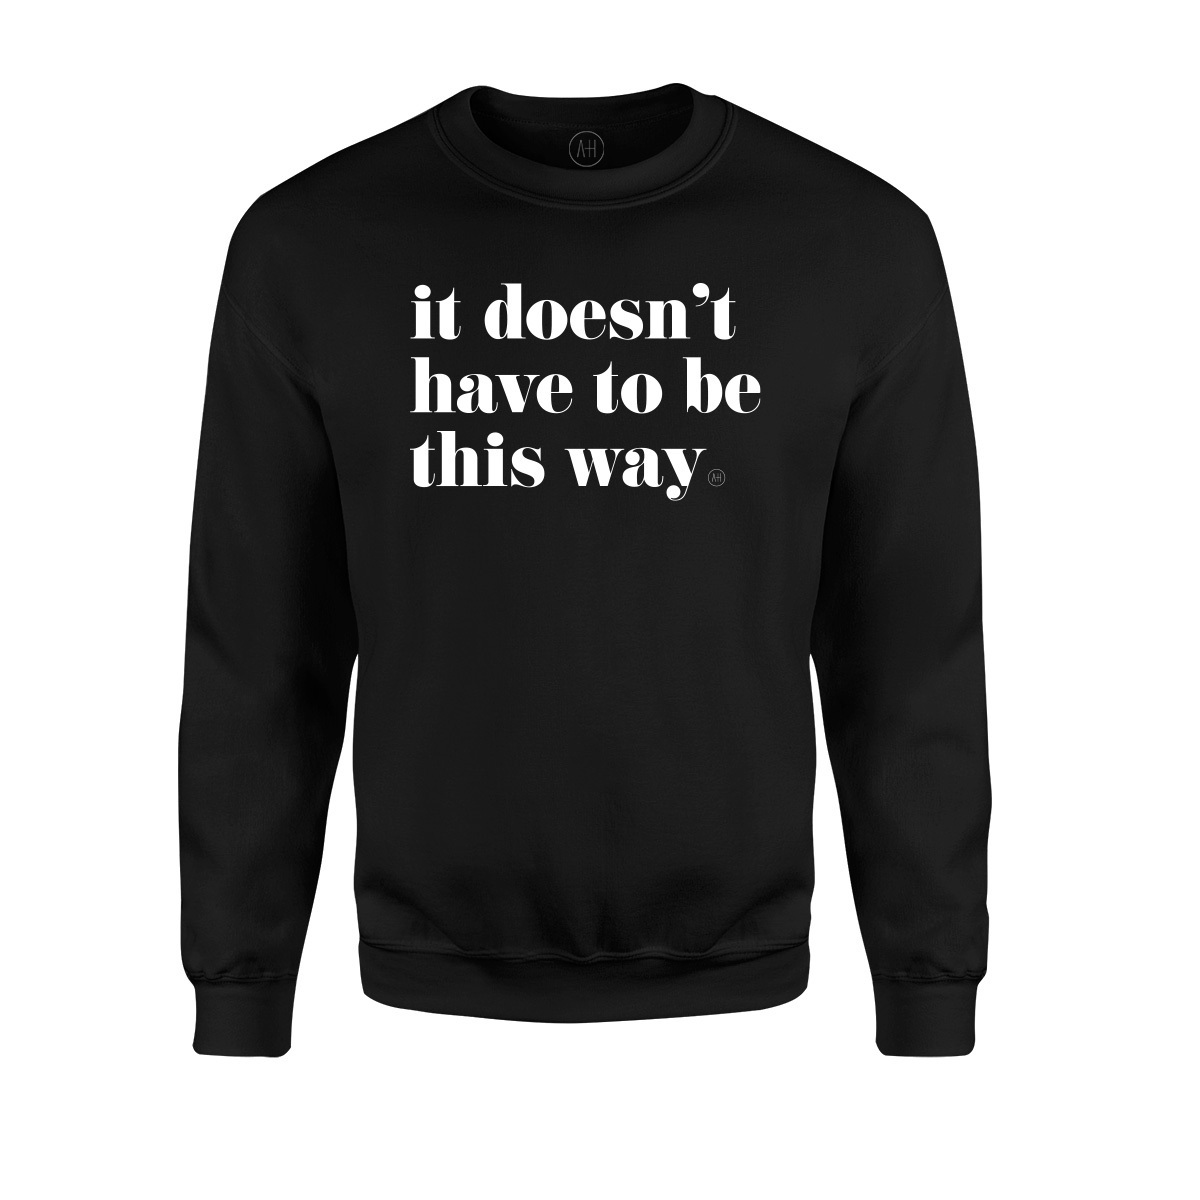 It Doesn't Have to Be This Way Unisex Crew Sweatshirt (Black)